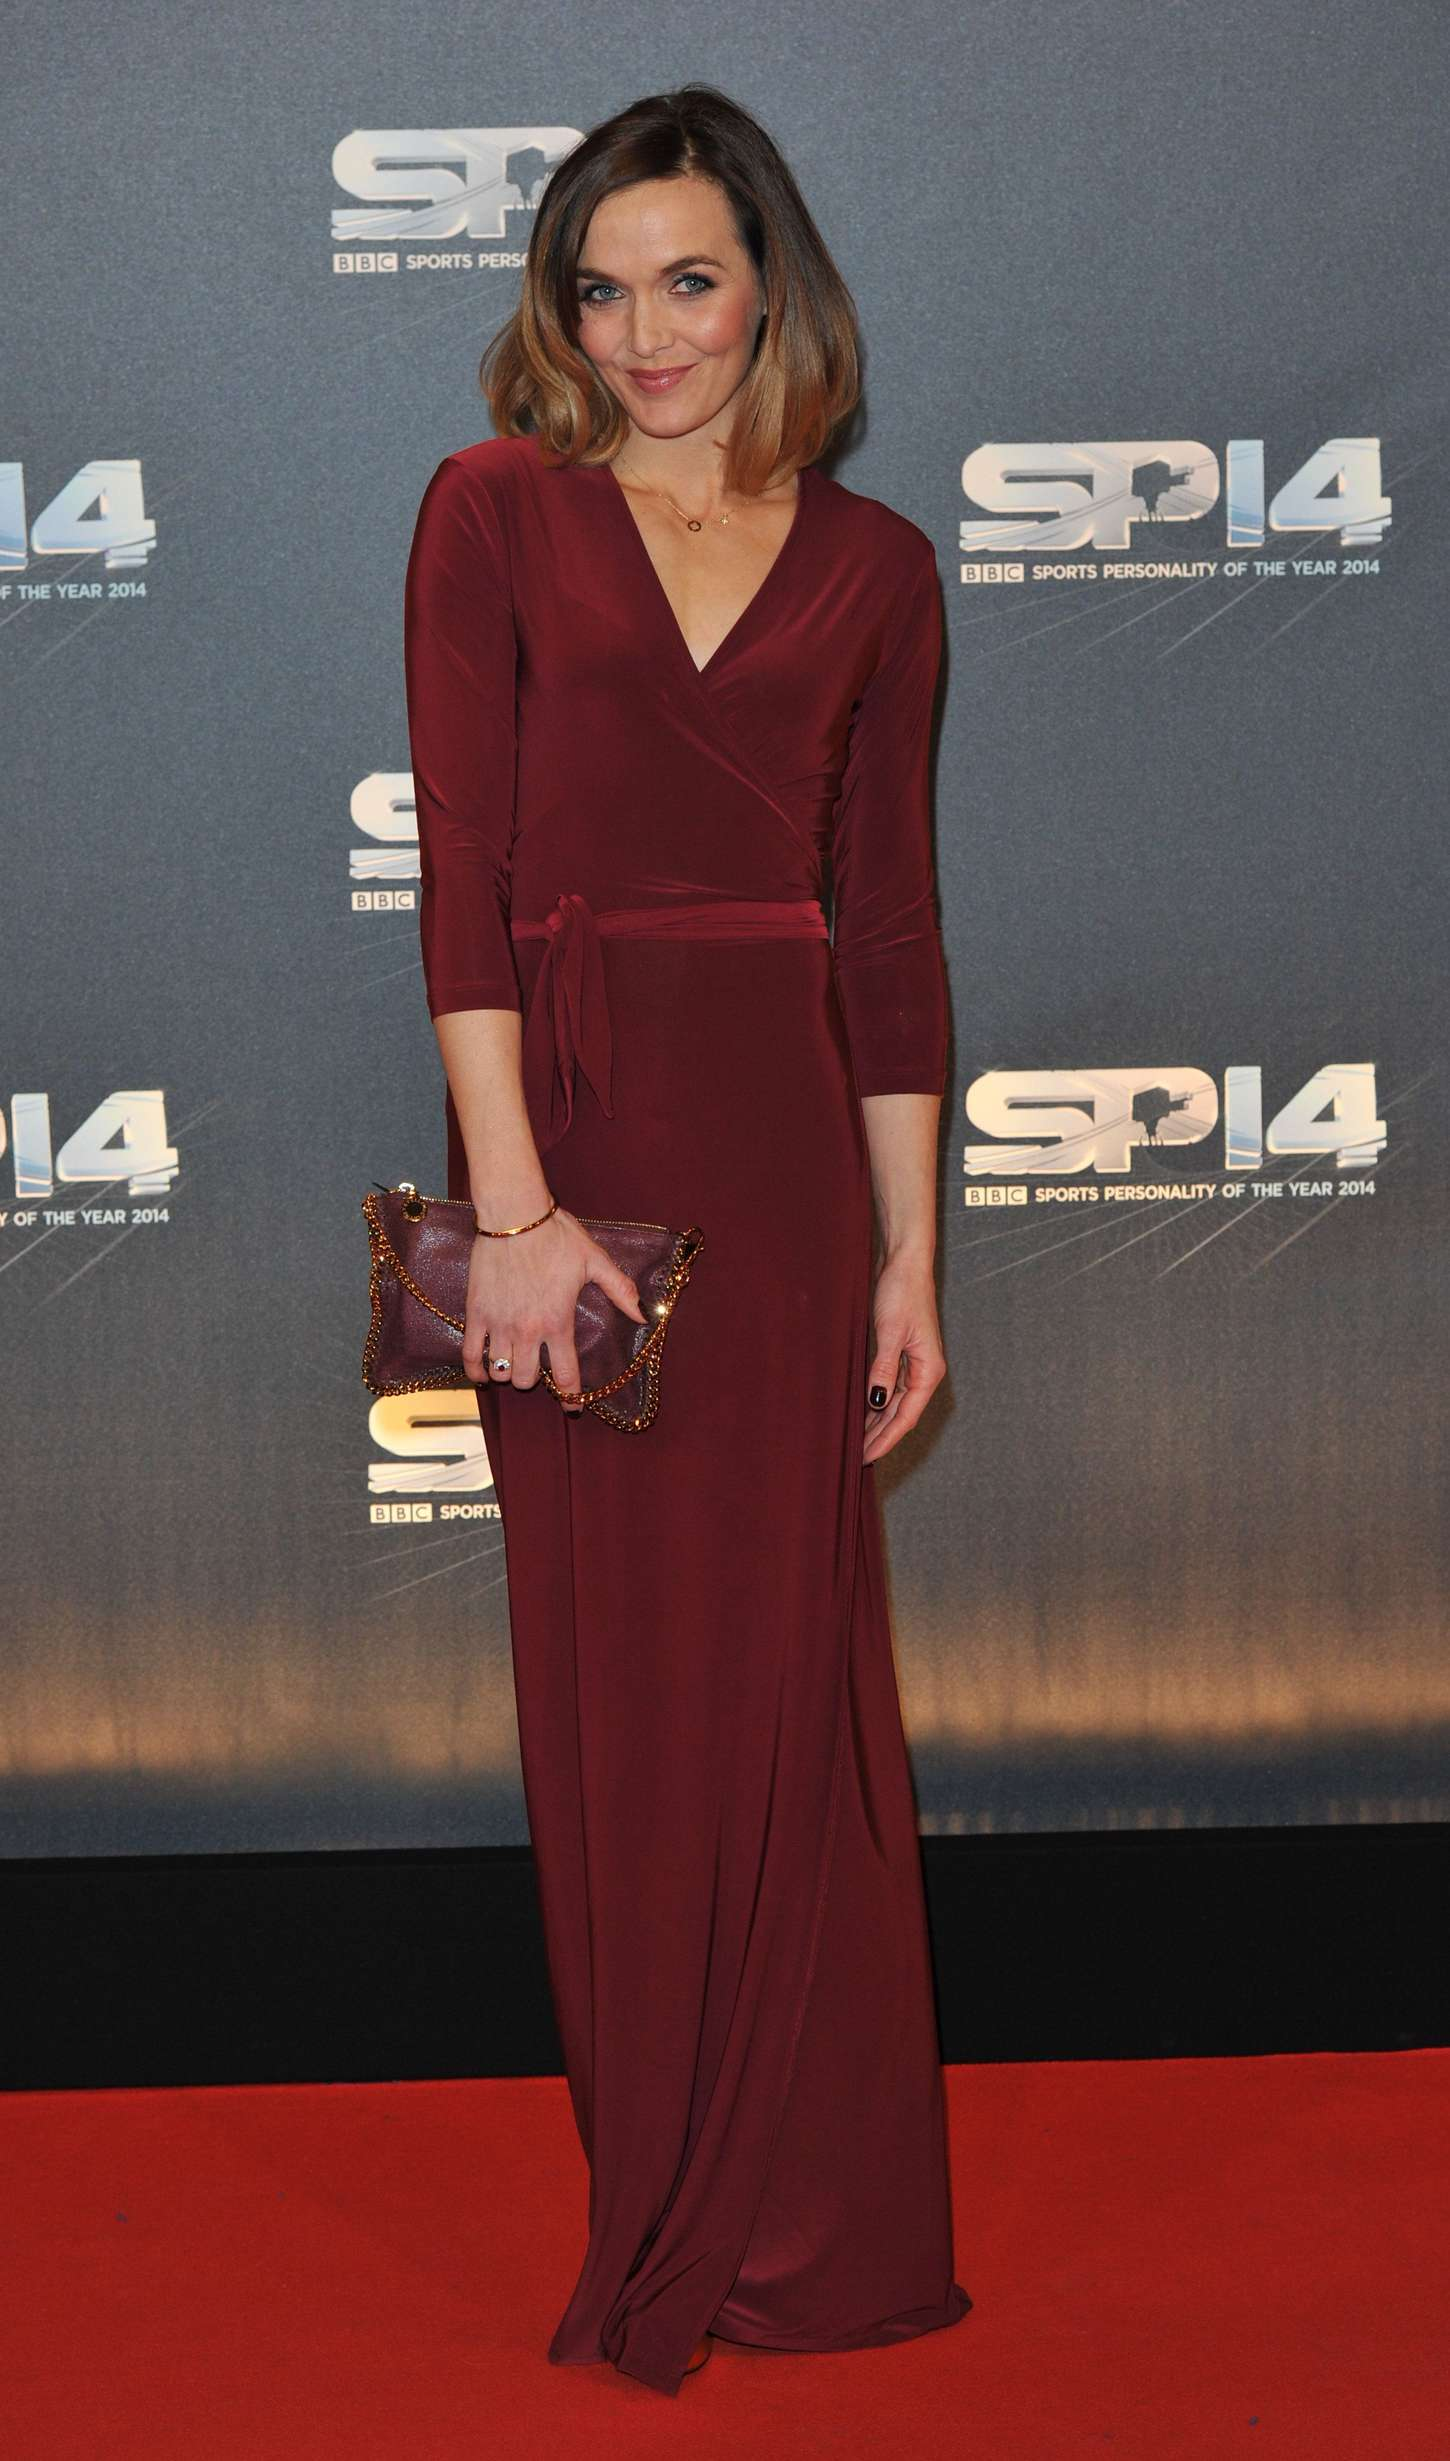 Victoria Pendleton BBC Sports Personality of the Year Awards in Glasgow